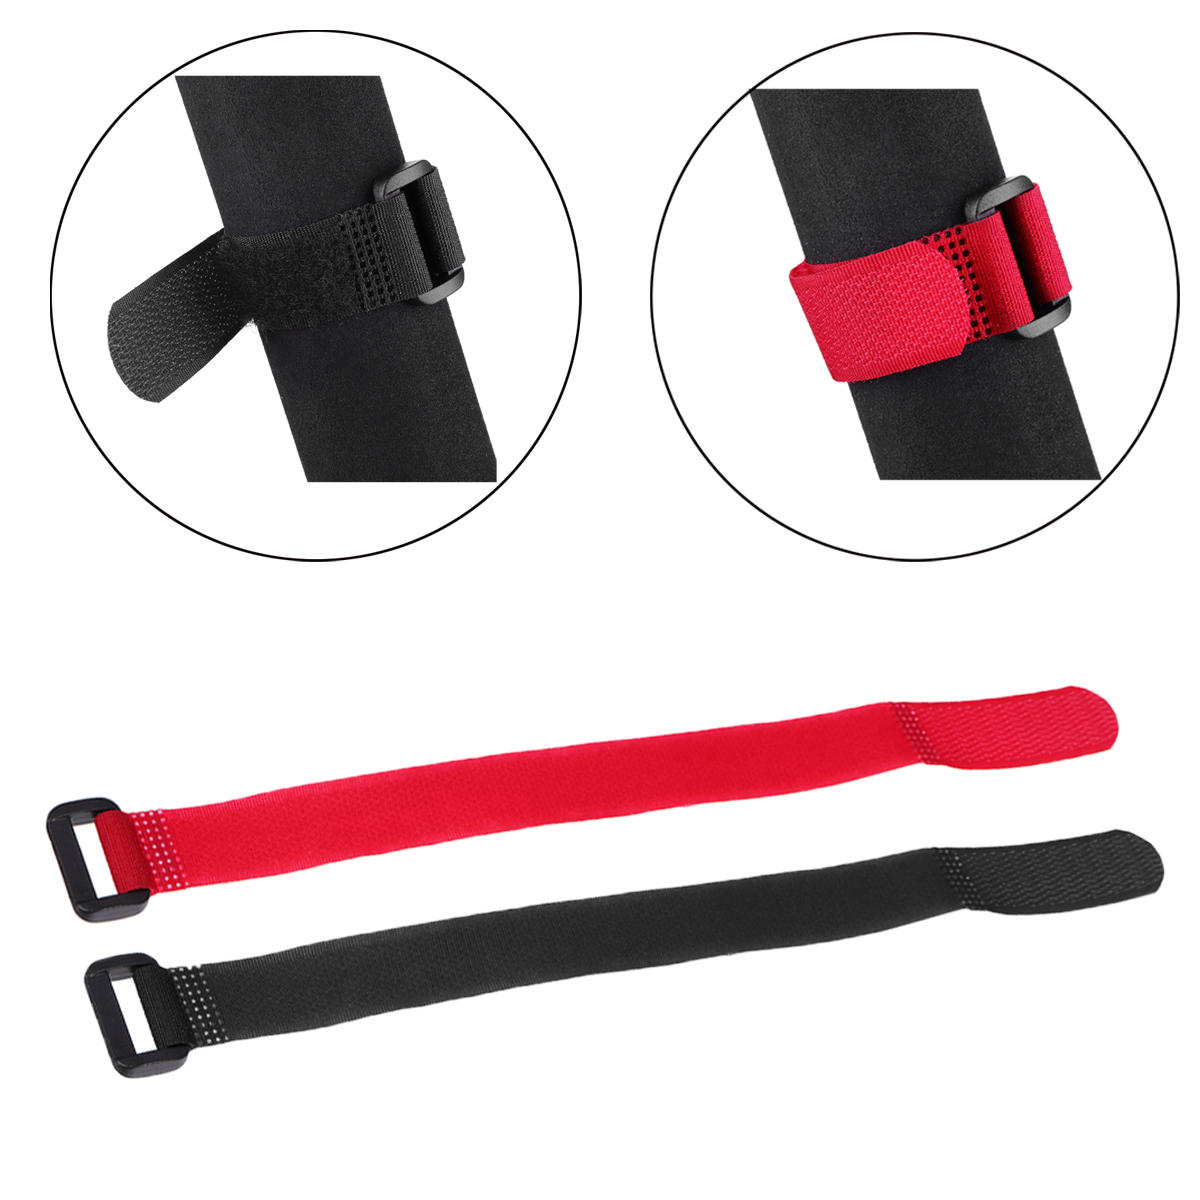 BIKIGHT Universal Magic Sticker Strap Flambement adhésif Bande pour scooter électrique Xiaomi M365